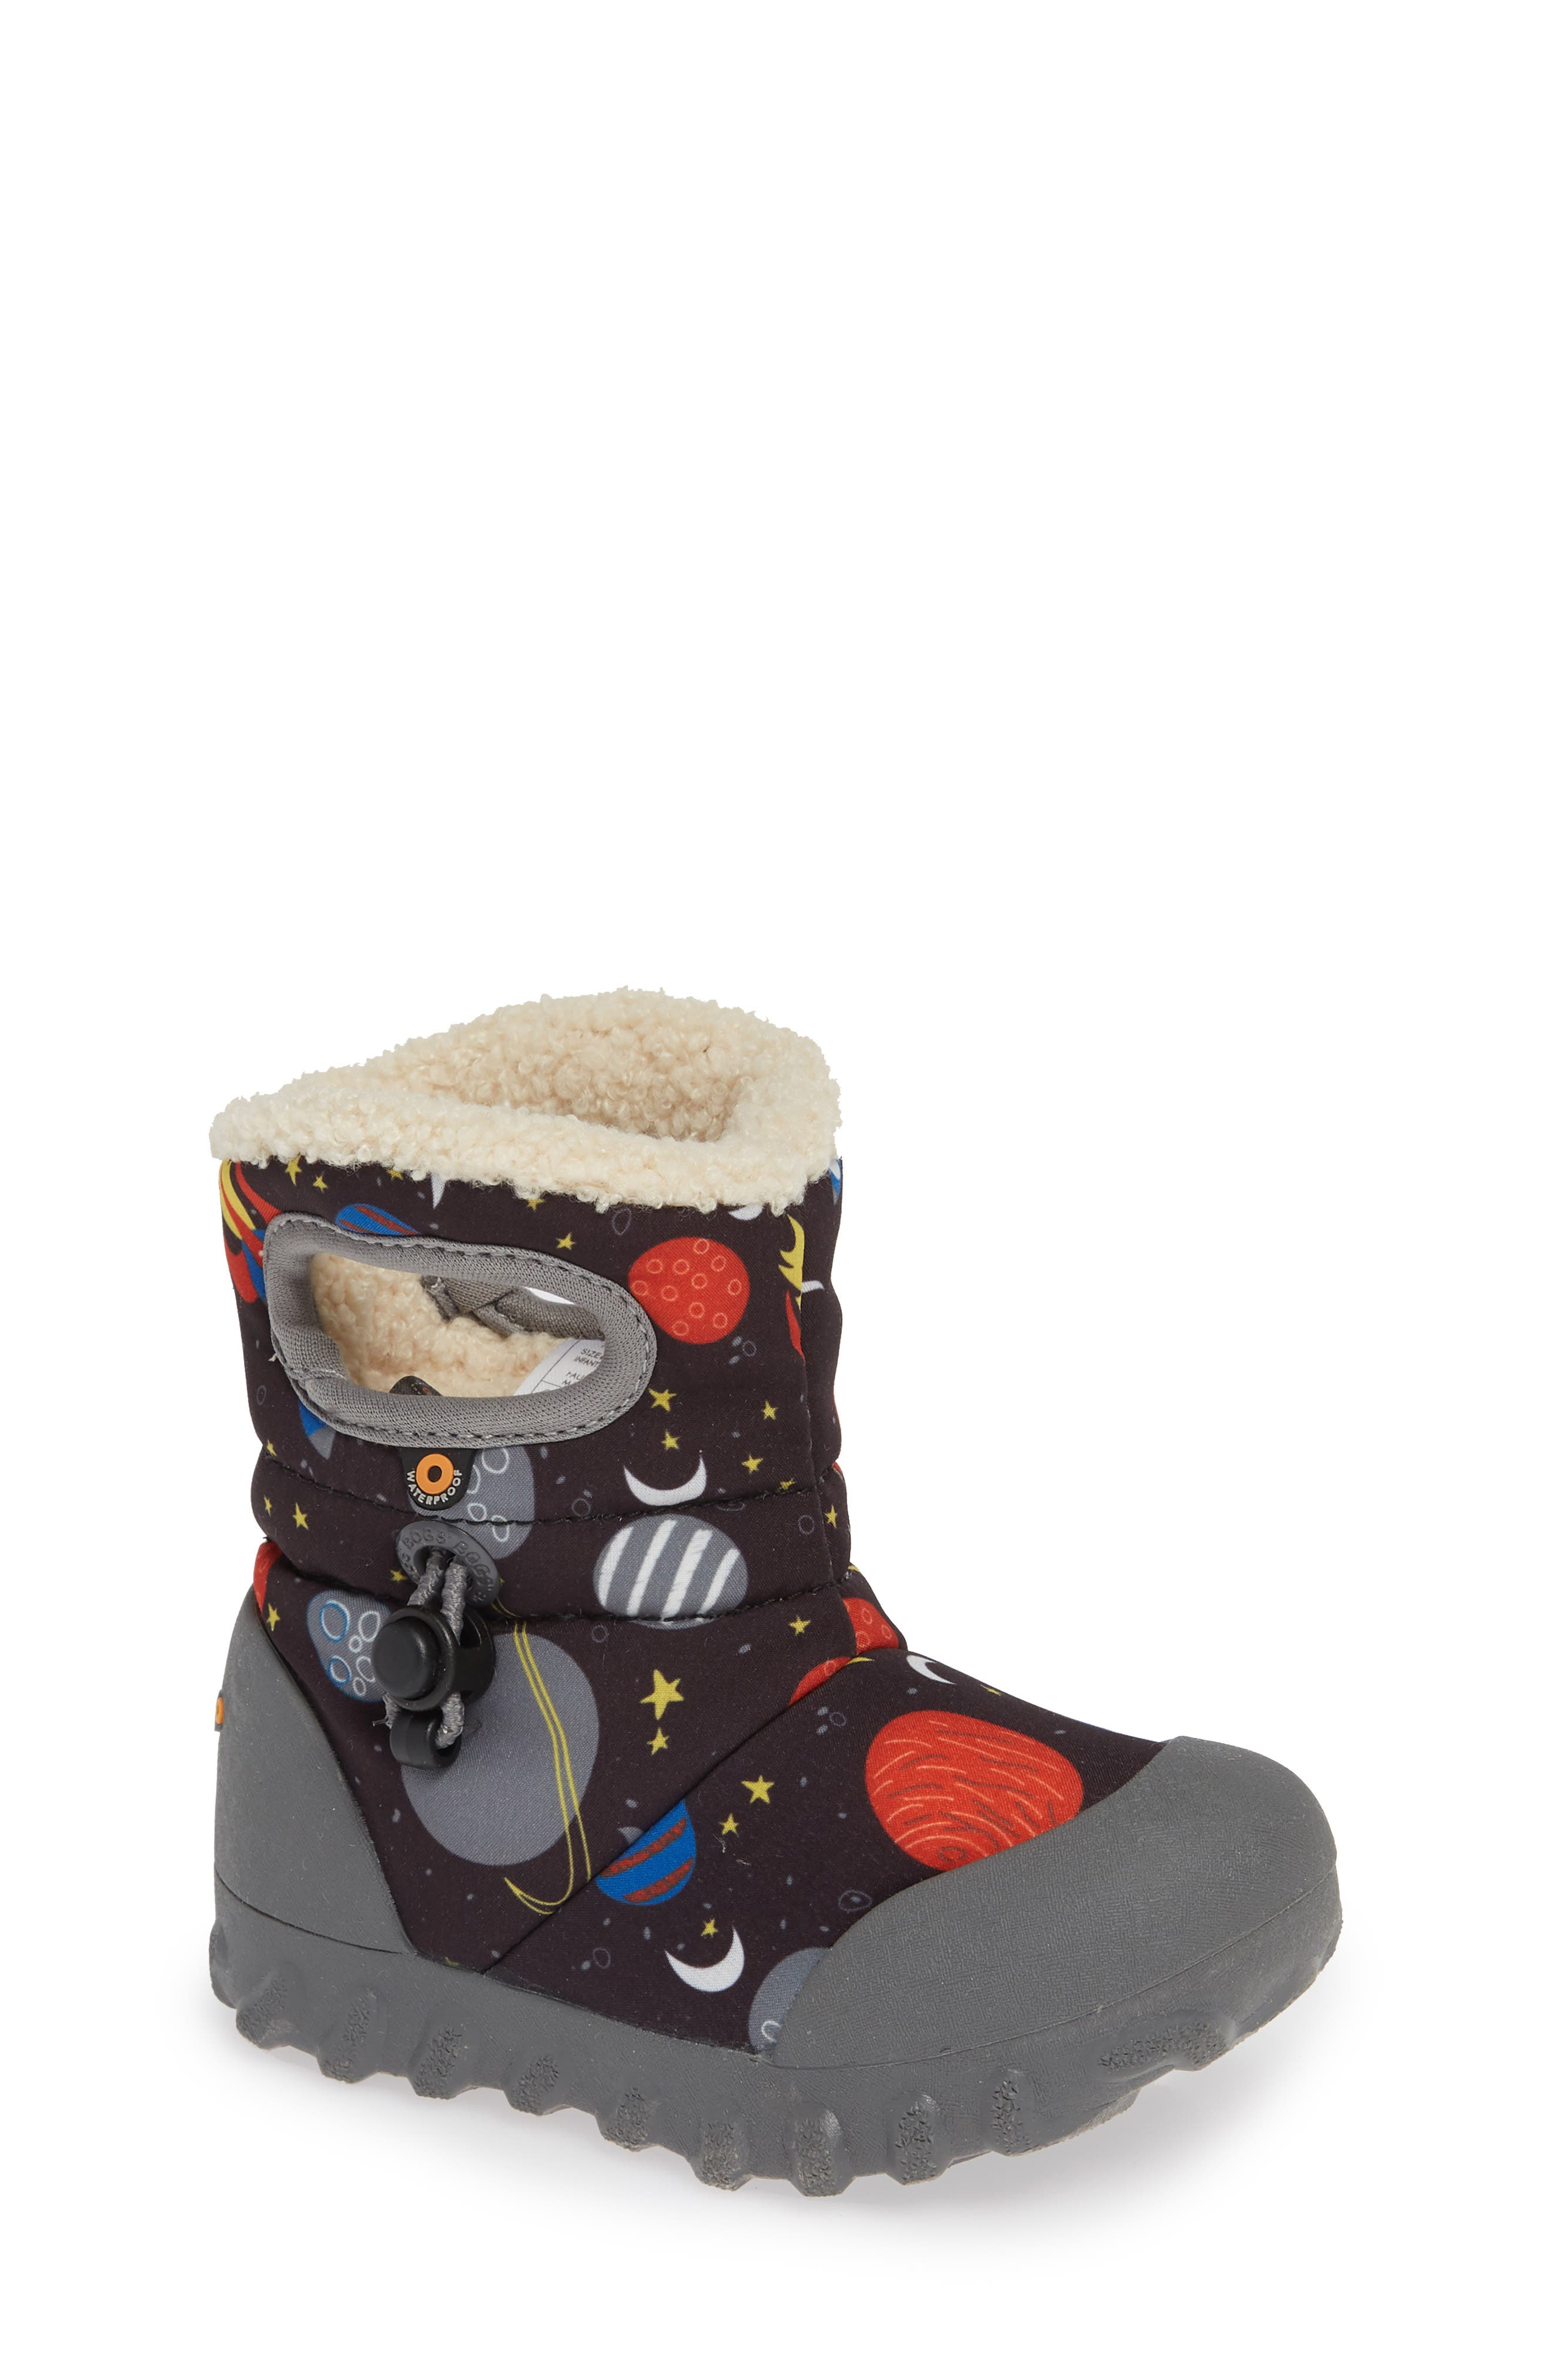 BOGS B-MOC Space Waterproof Insulated Faux Fur Boot, Main, color, BLACK MULTI